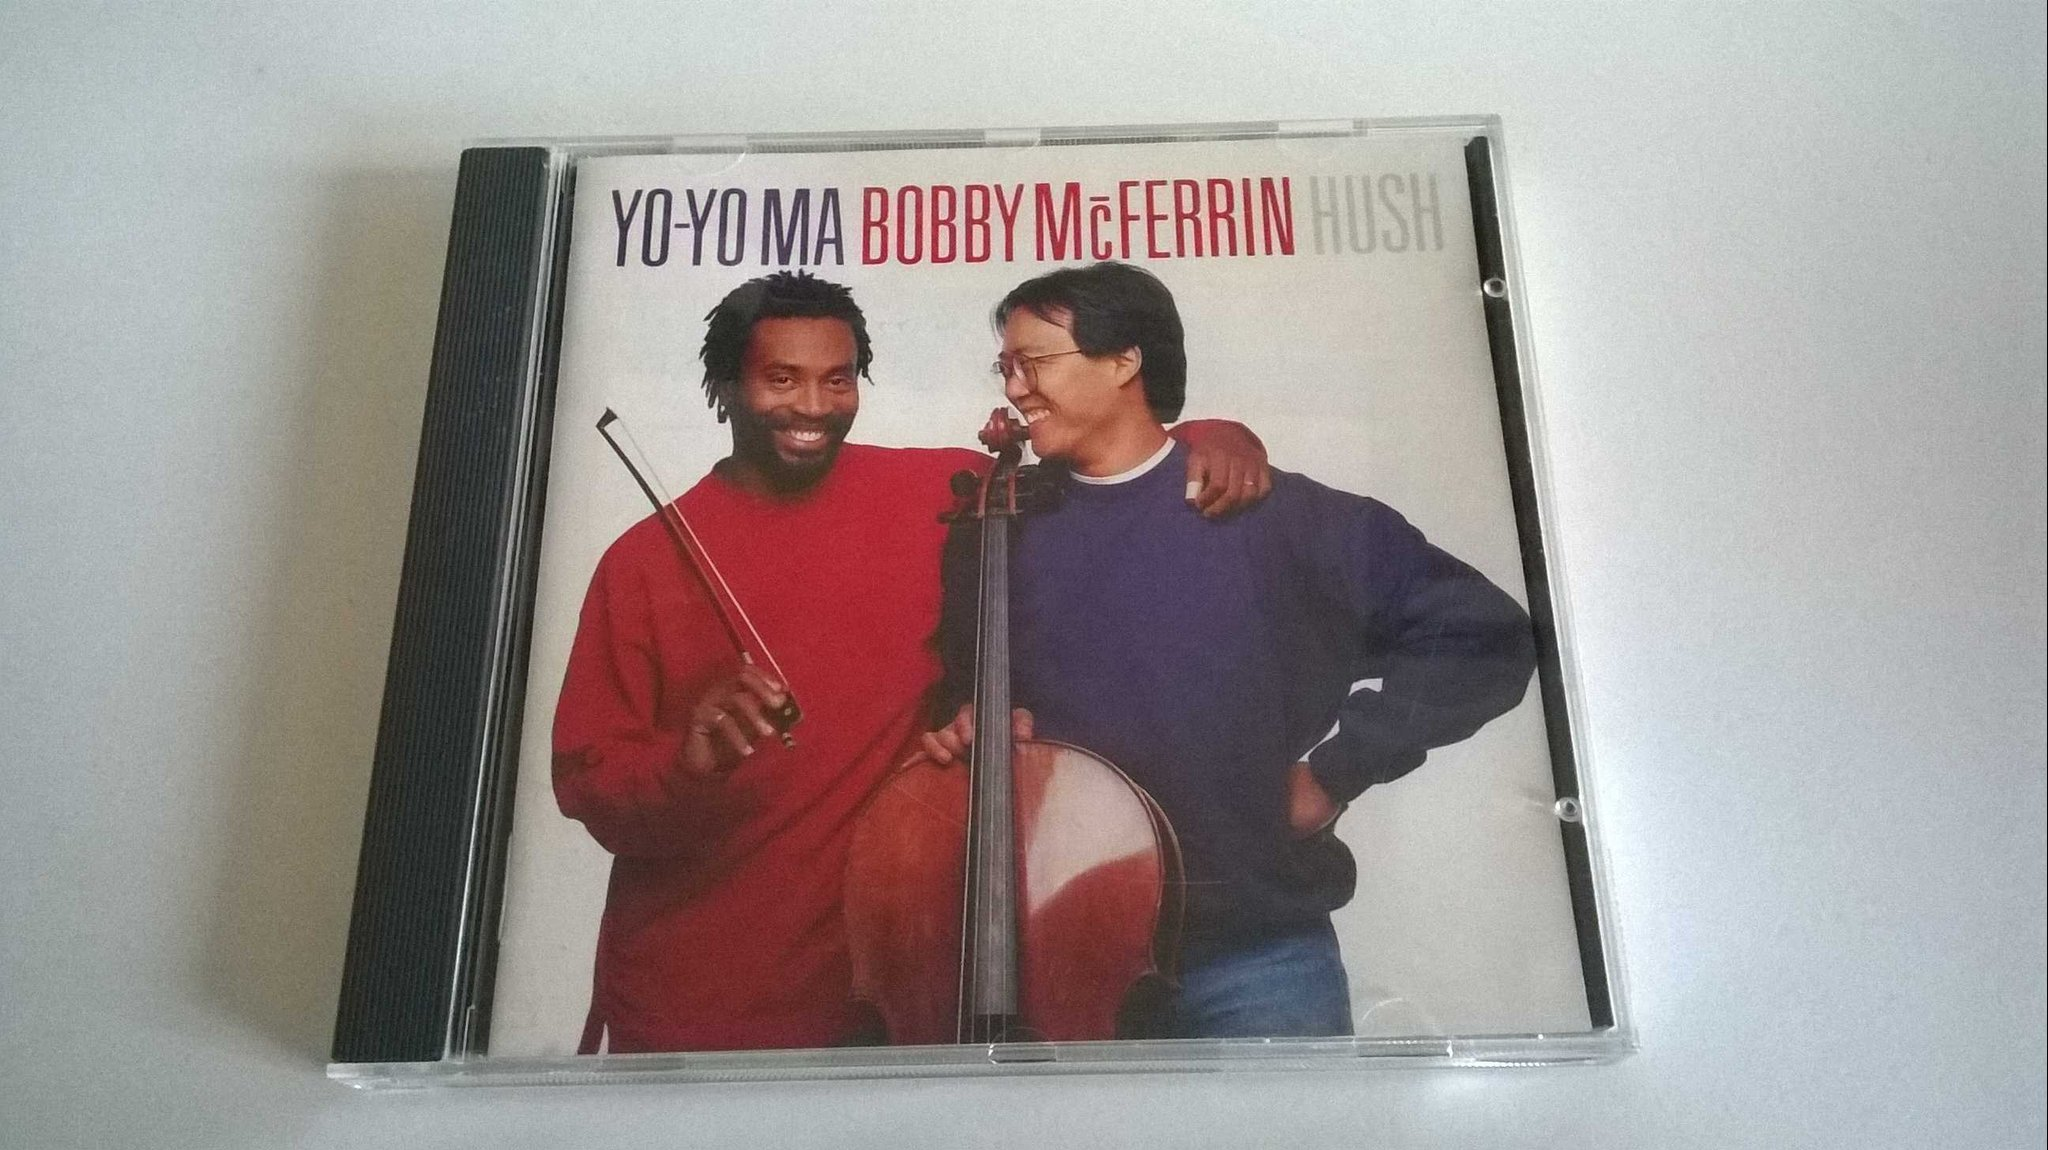 Bobby McFerrin & Yo-Yo Ma - Hush, CD